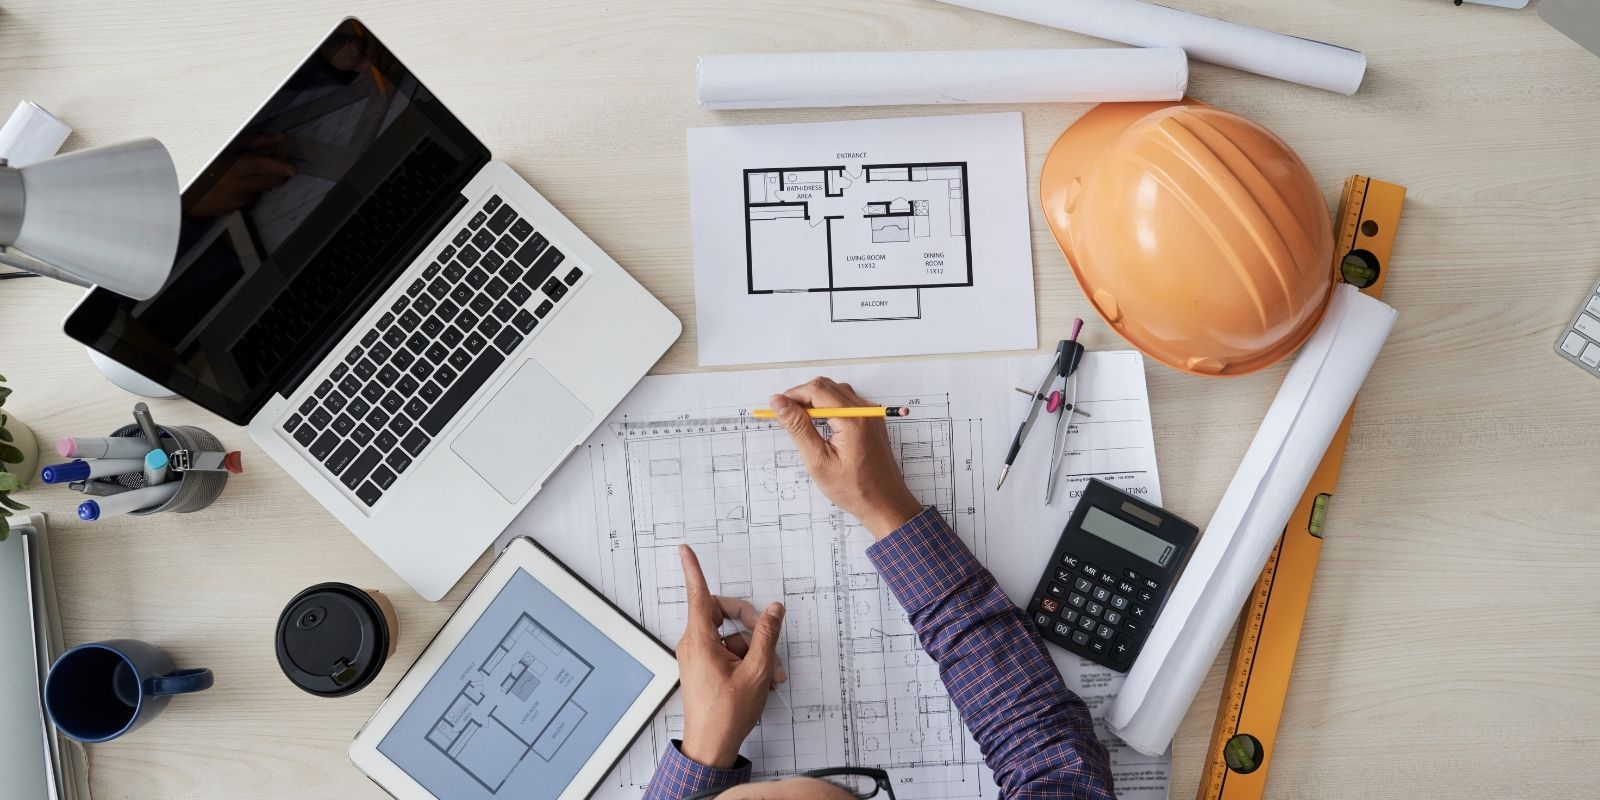 view of a civil engineer's desk with sketches, plans, computer, iPad and hardhat